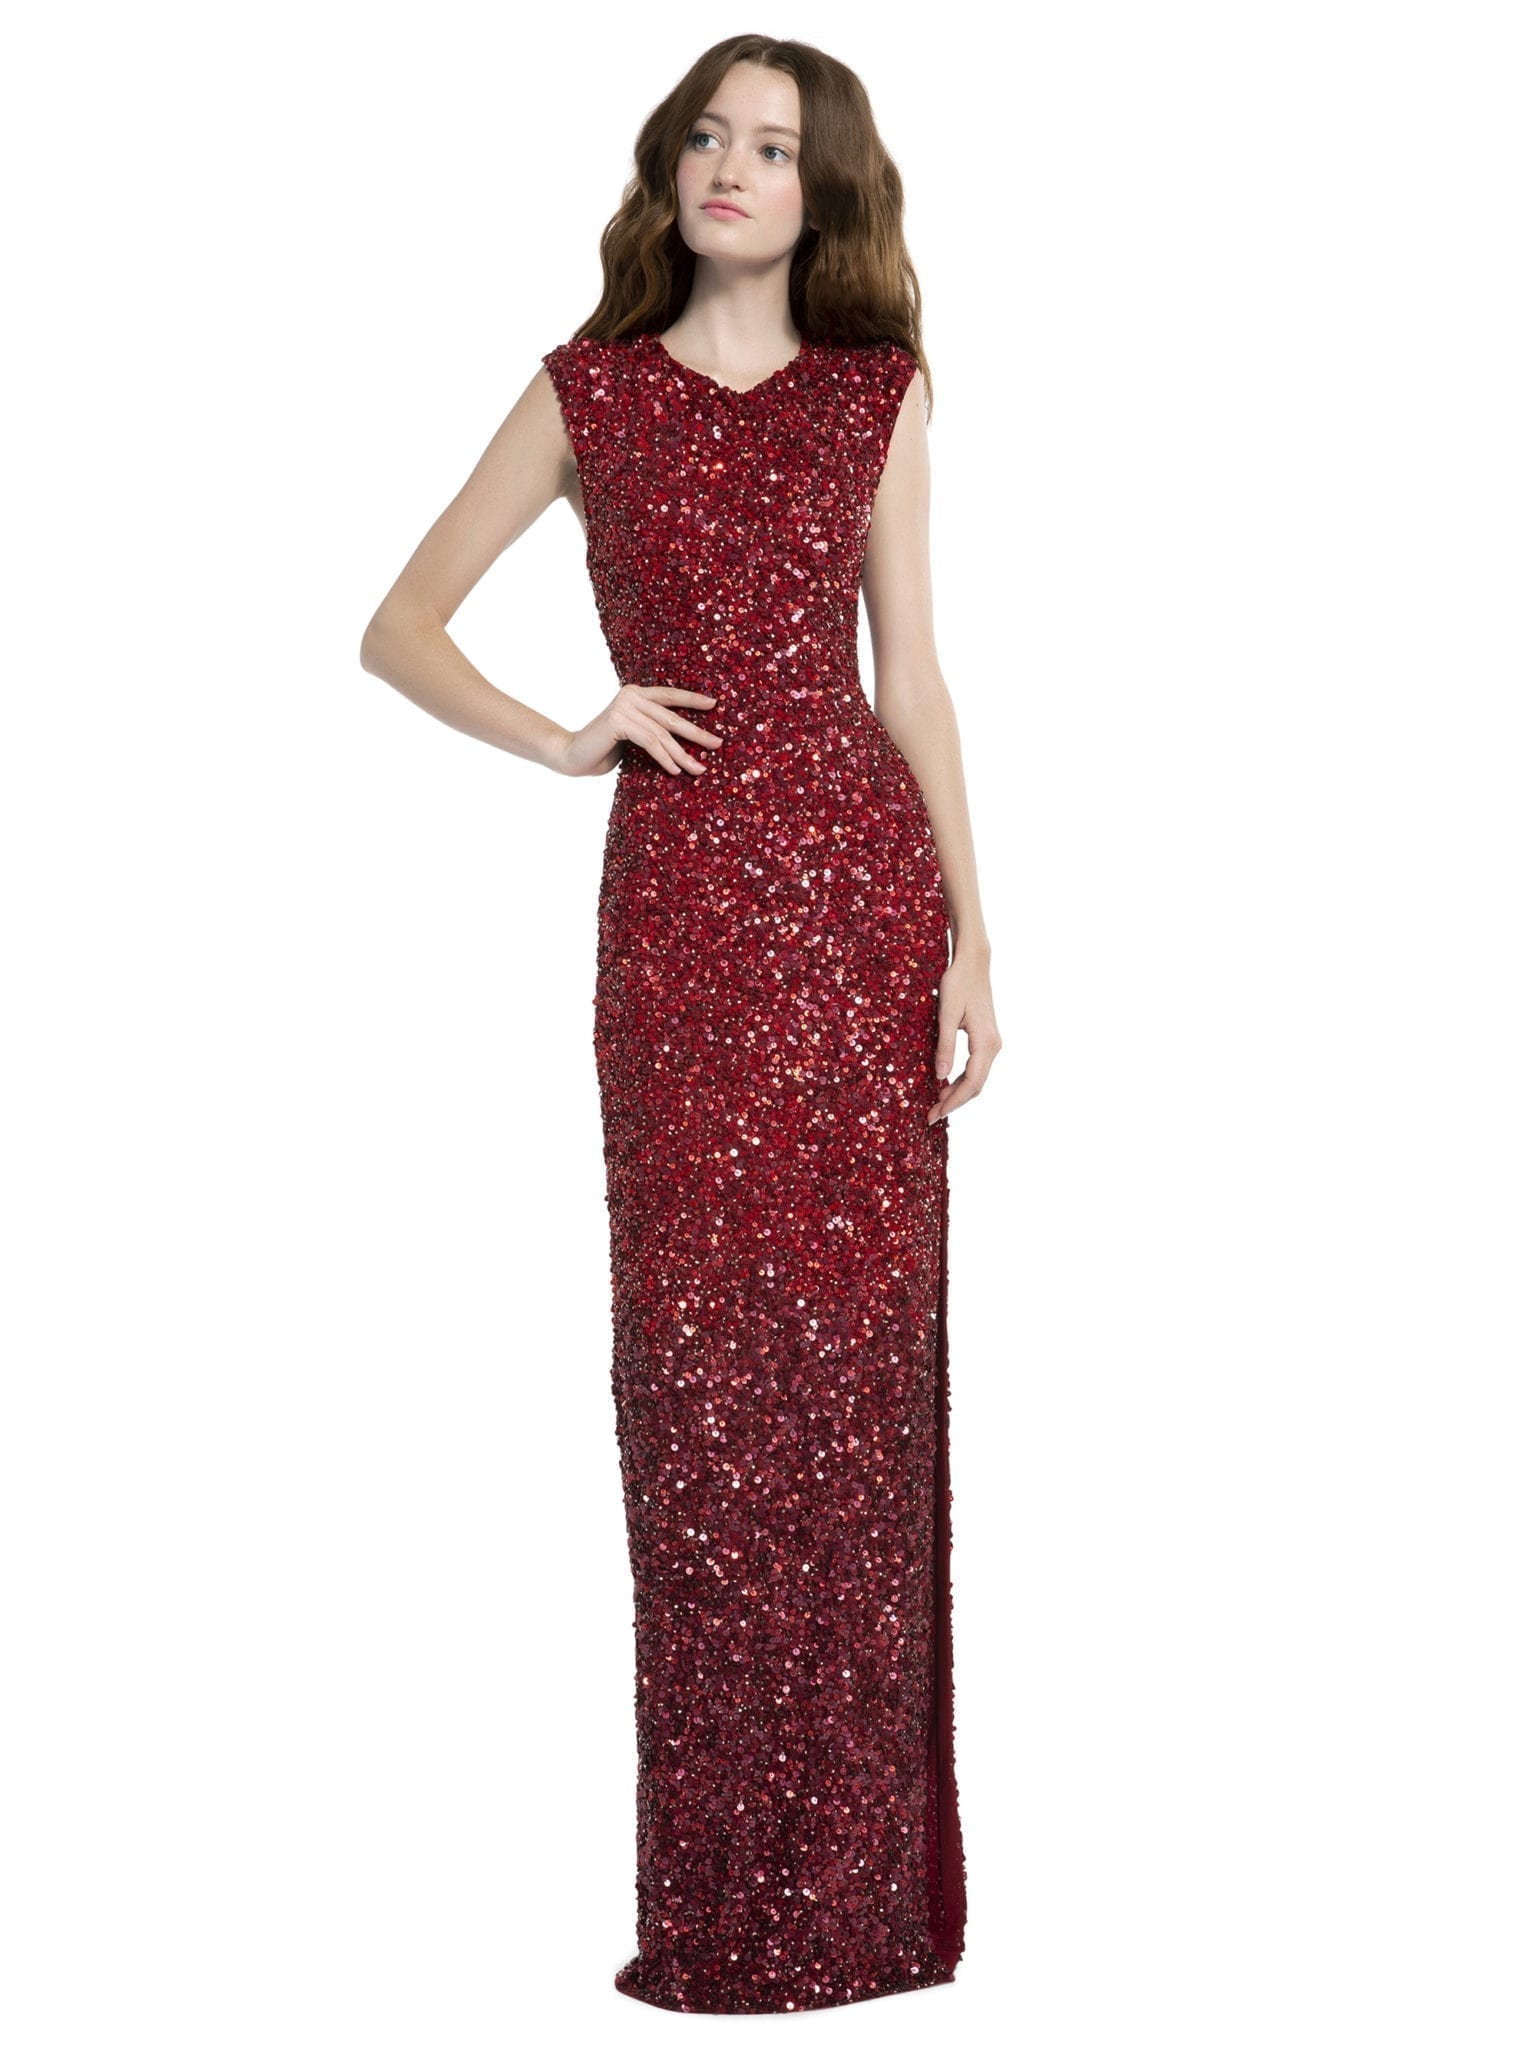 e81cbb7cd910 Alice + Olivia Jojo Sequin Fitted Red Gown - We Select Dresses